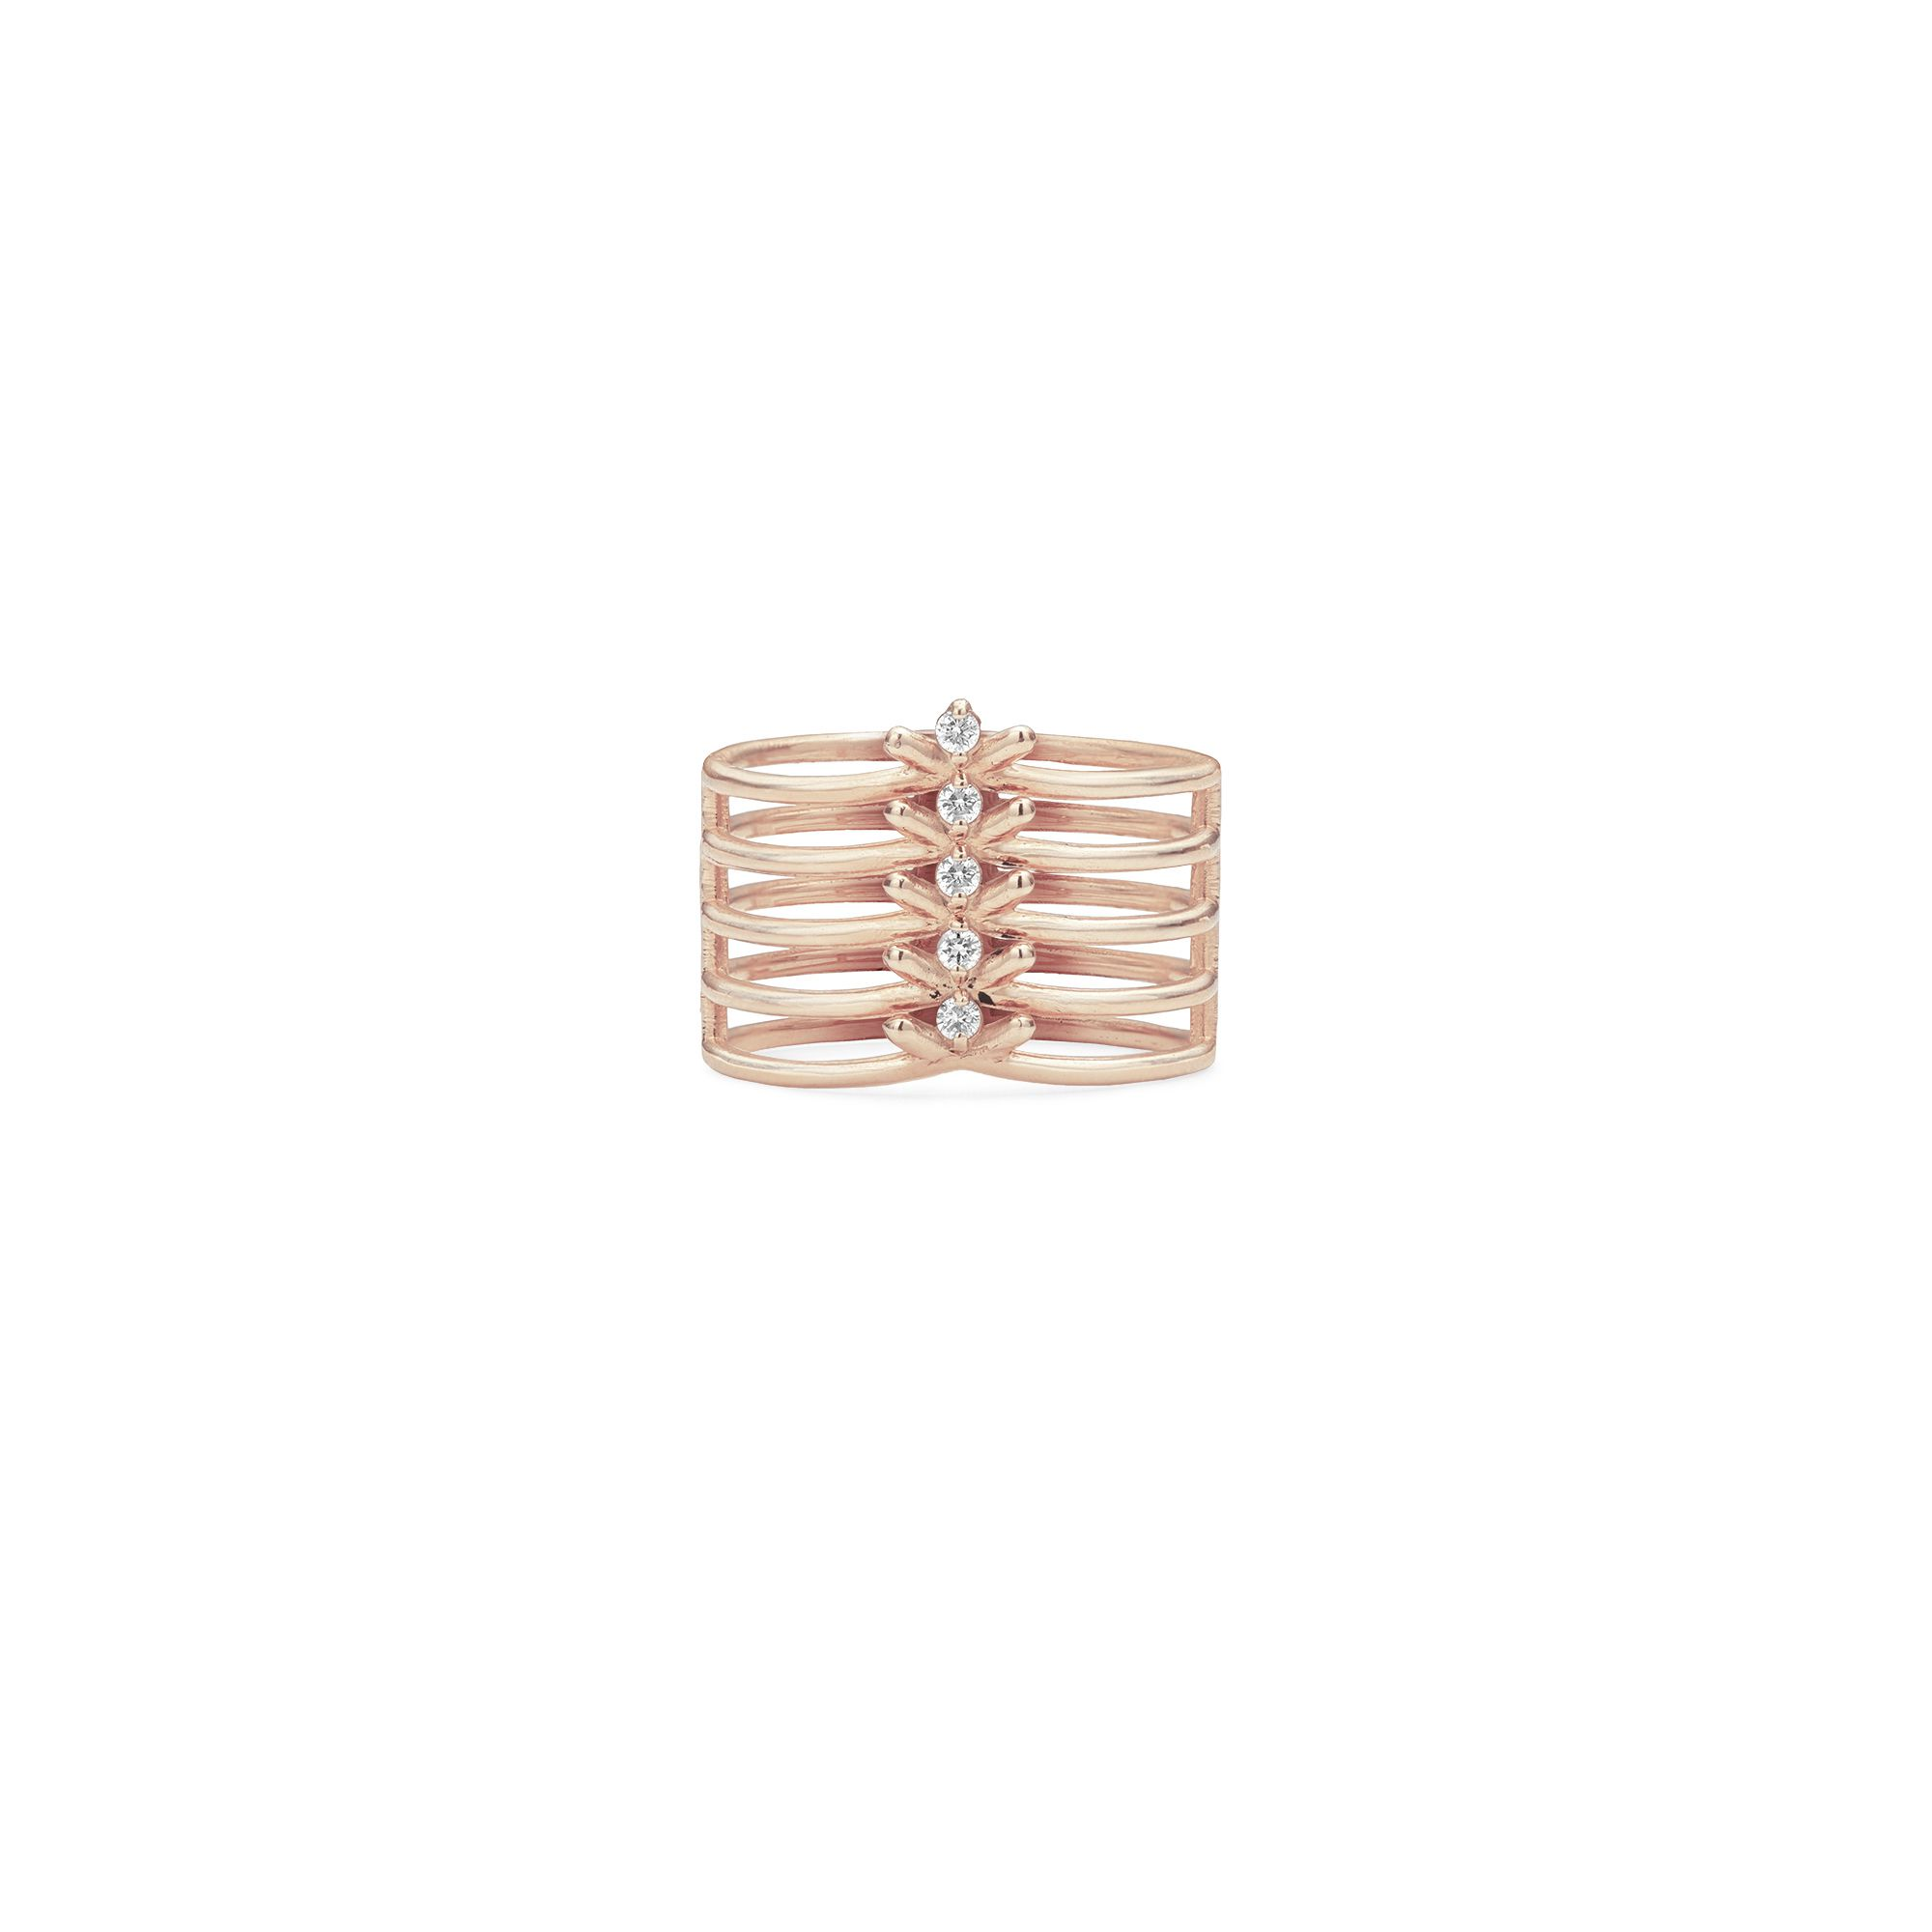 5 element 'Spinae' ring Ring is rose gold and diamonds